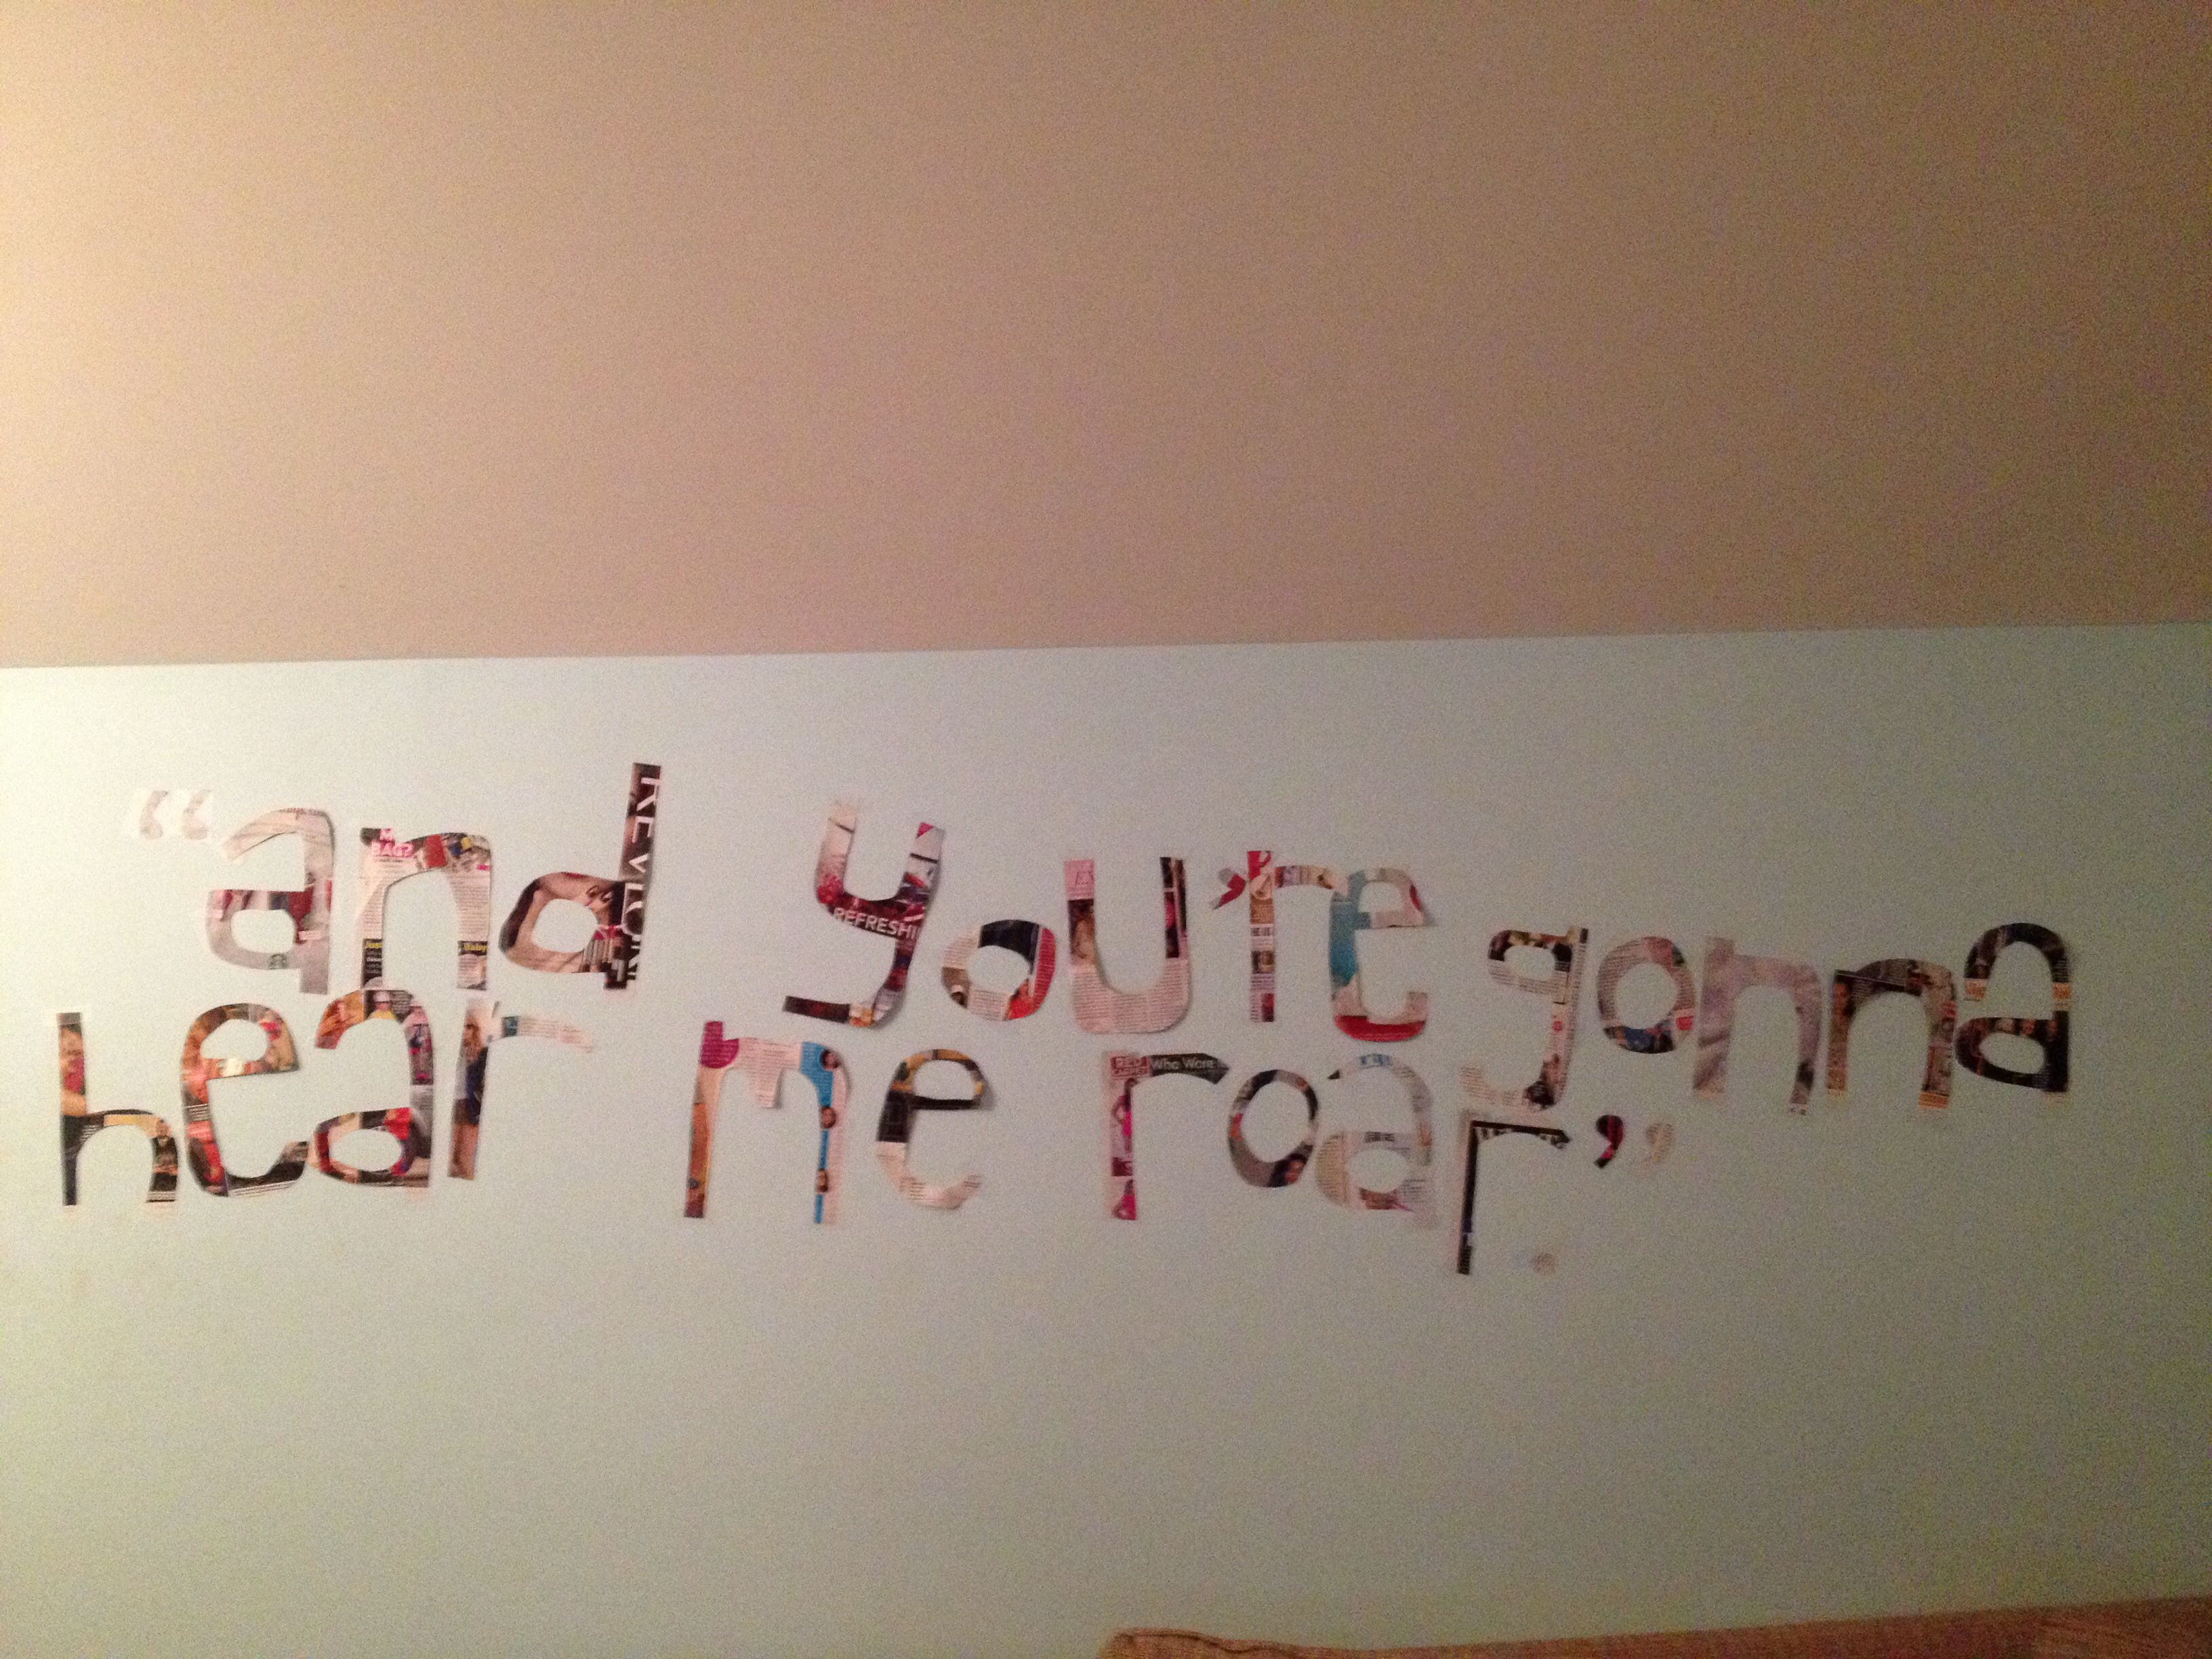 Song lyrics cut out of magazines